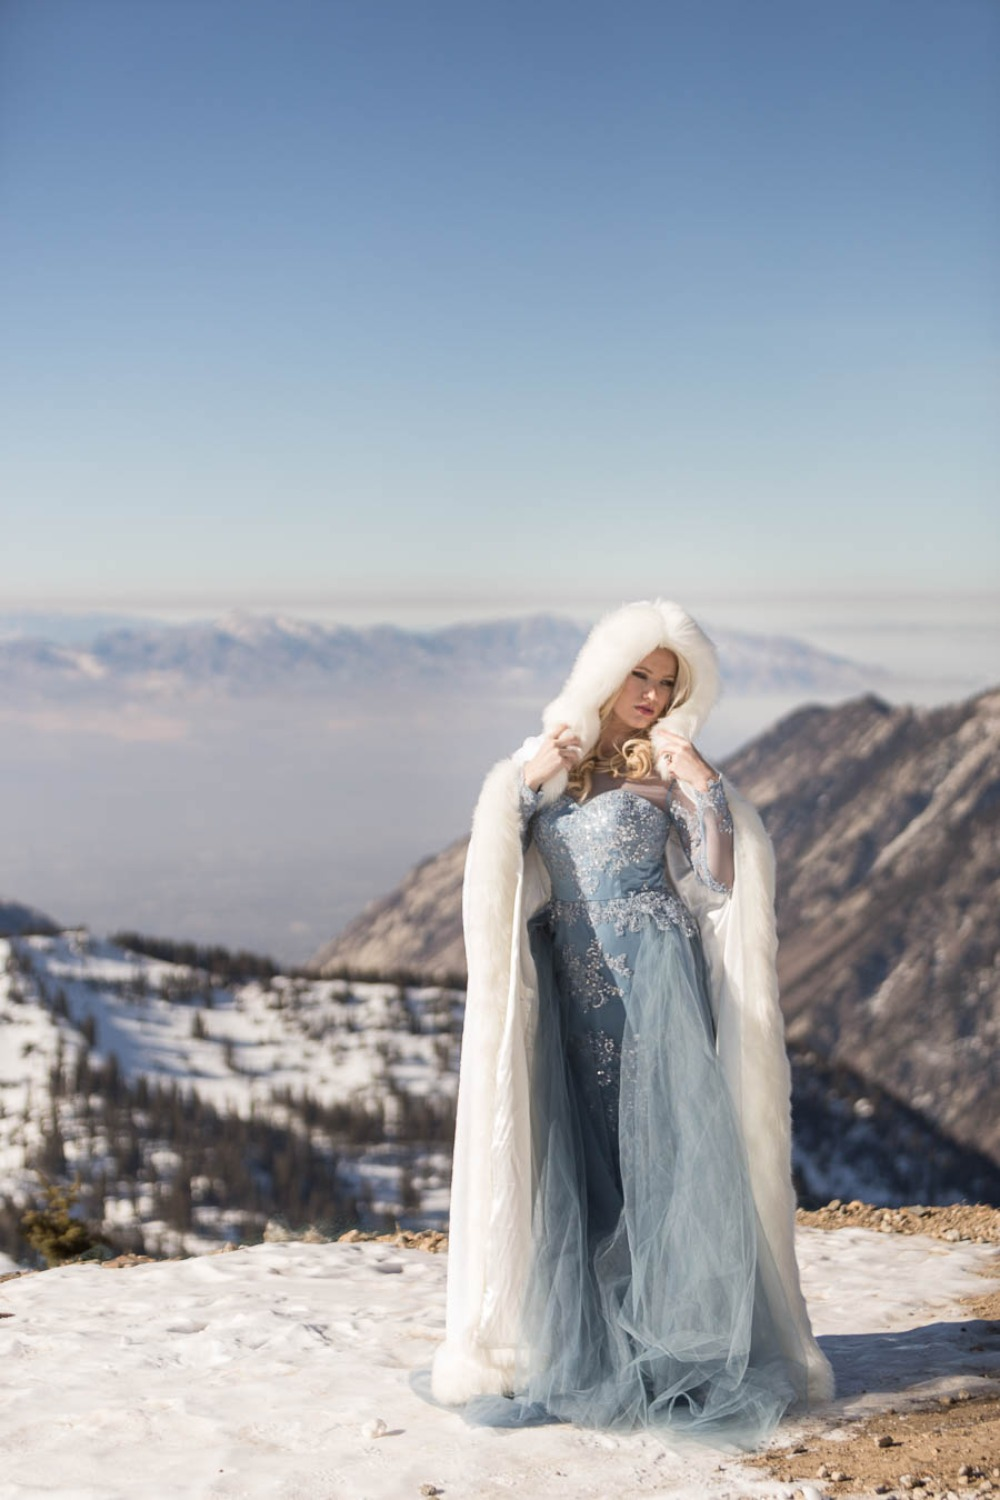 Elsa inspired bridal look with a blue embellished wedding dress with long sleeves and an illusion neckline plus a faux fur coverup with a hood